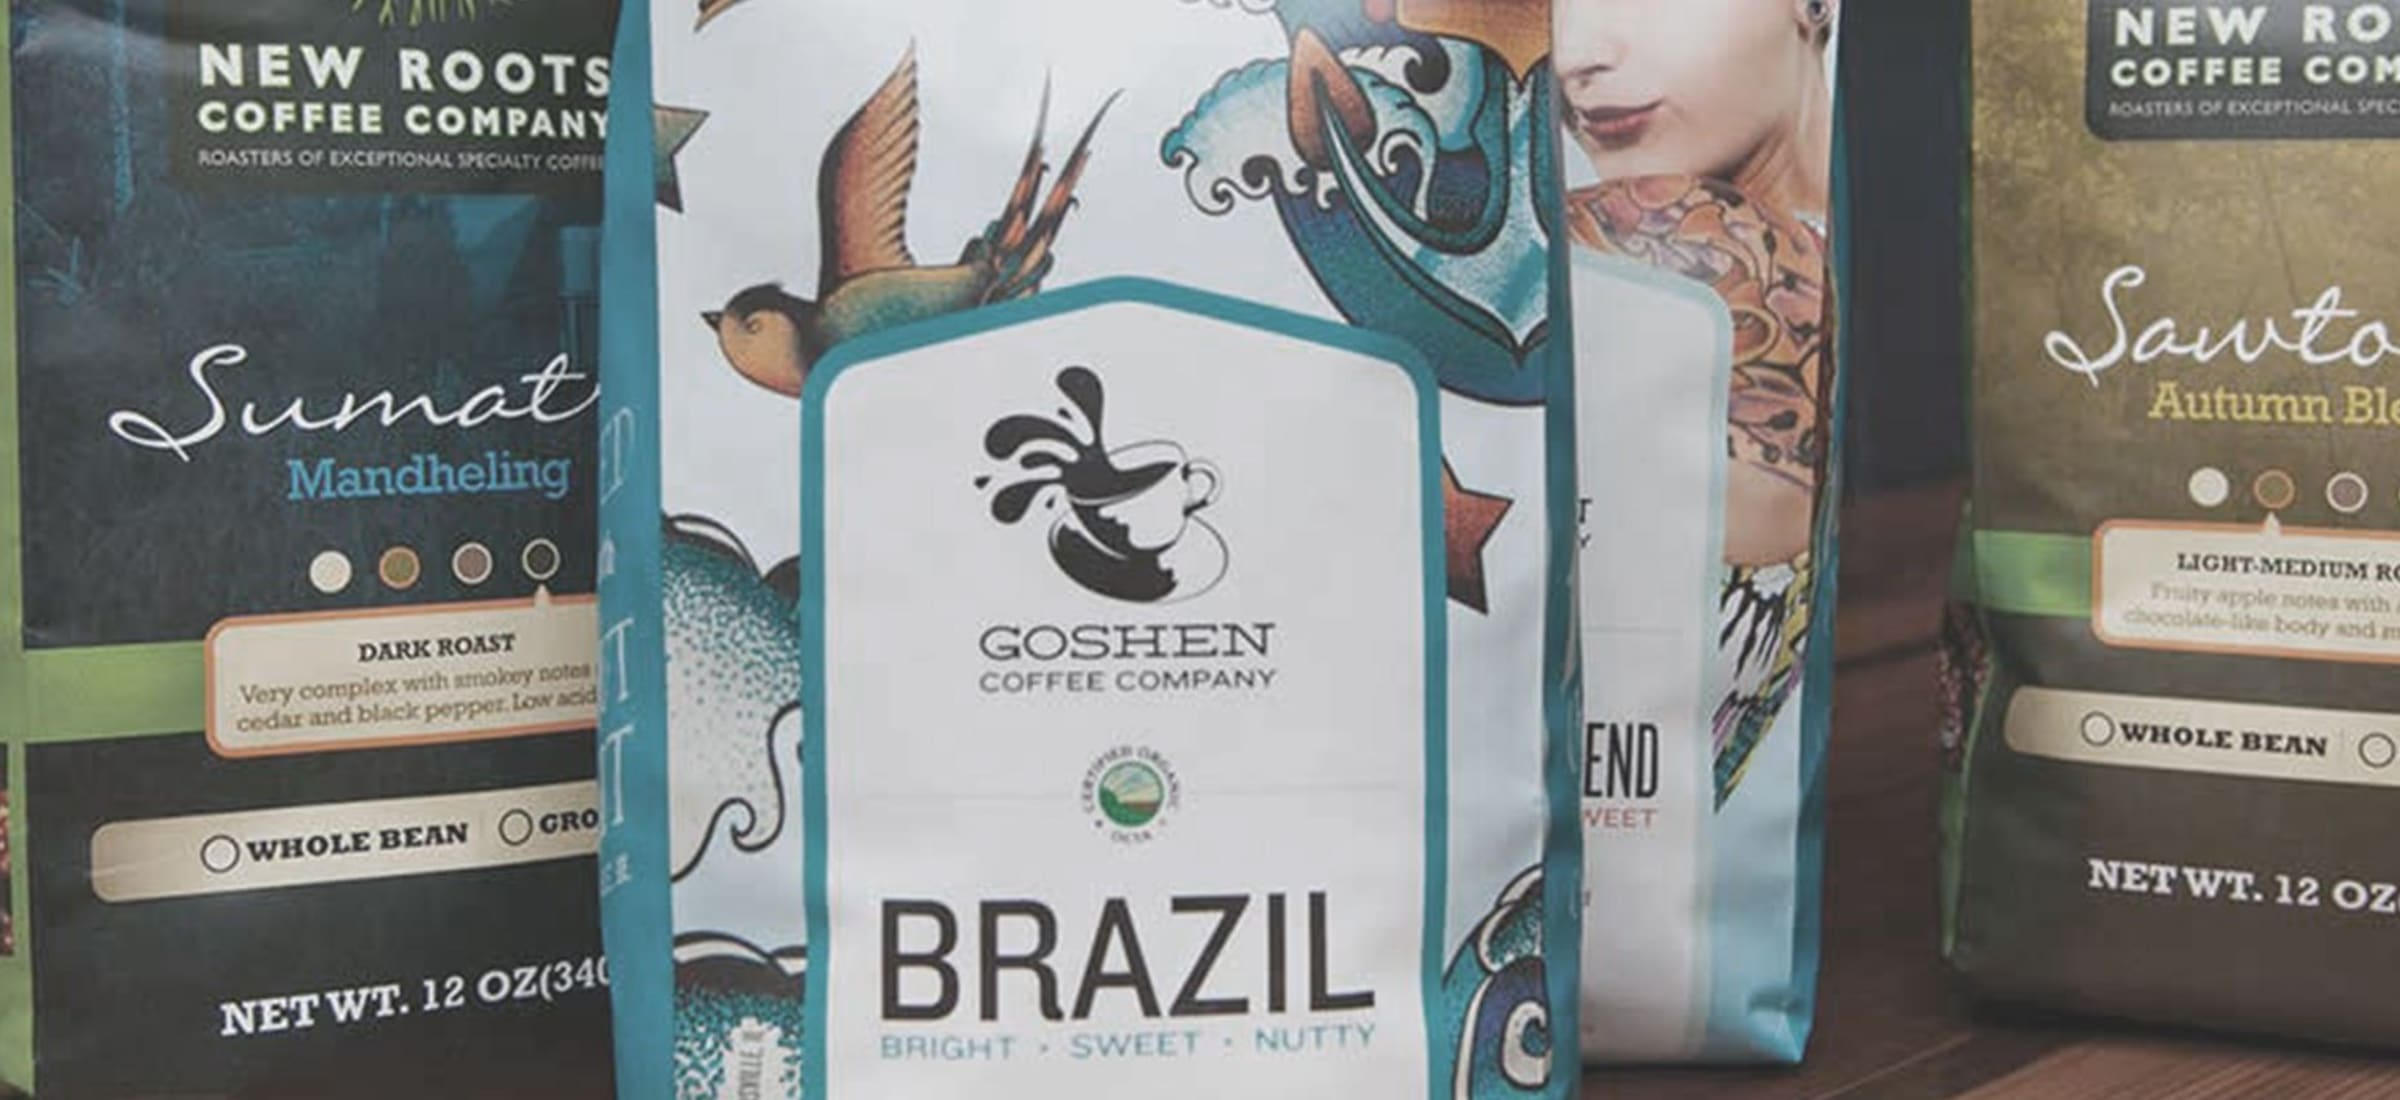 Roastar Coffee Bags Goshen Coffee Company New Roots Coffee Company